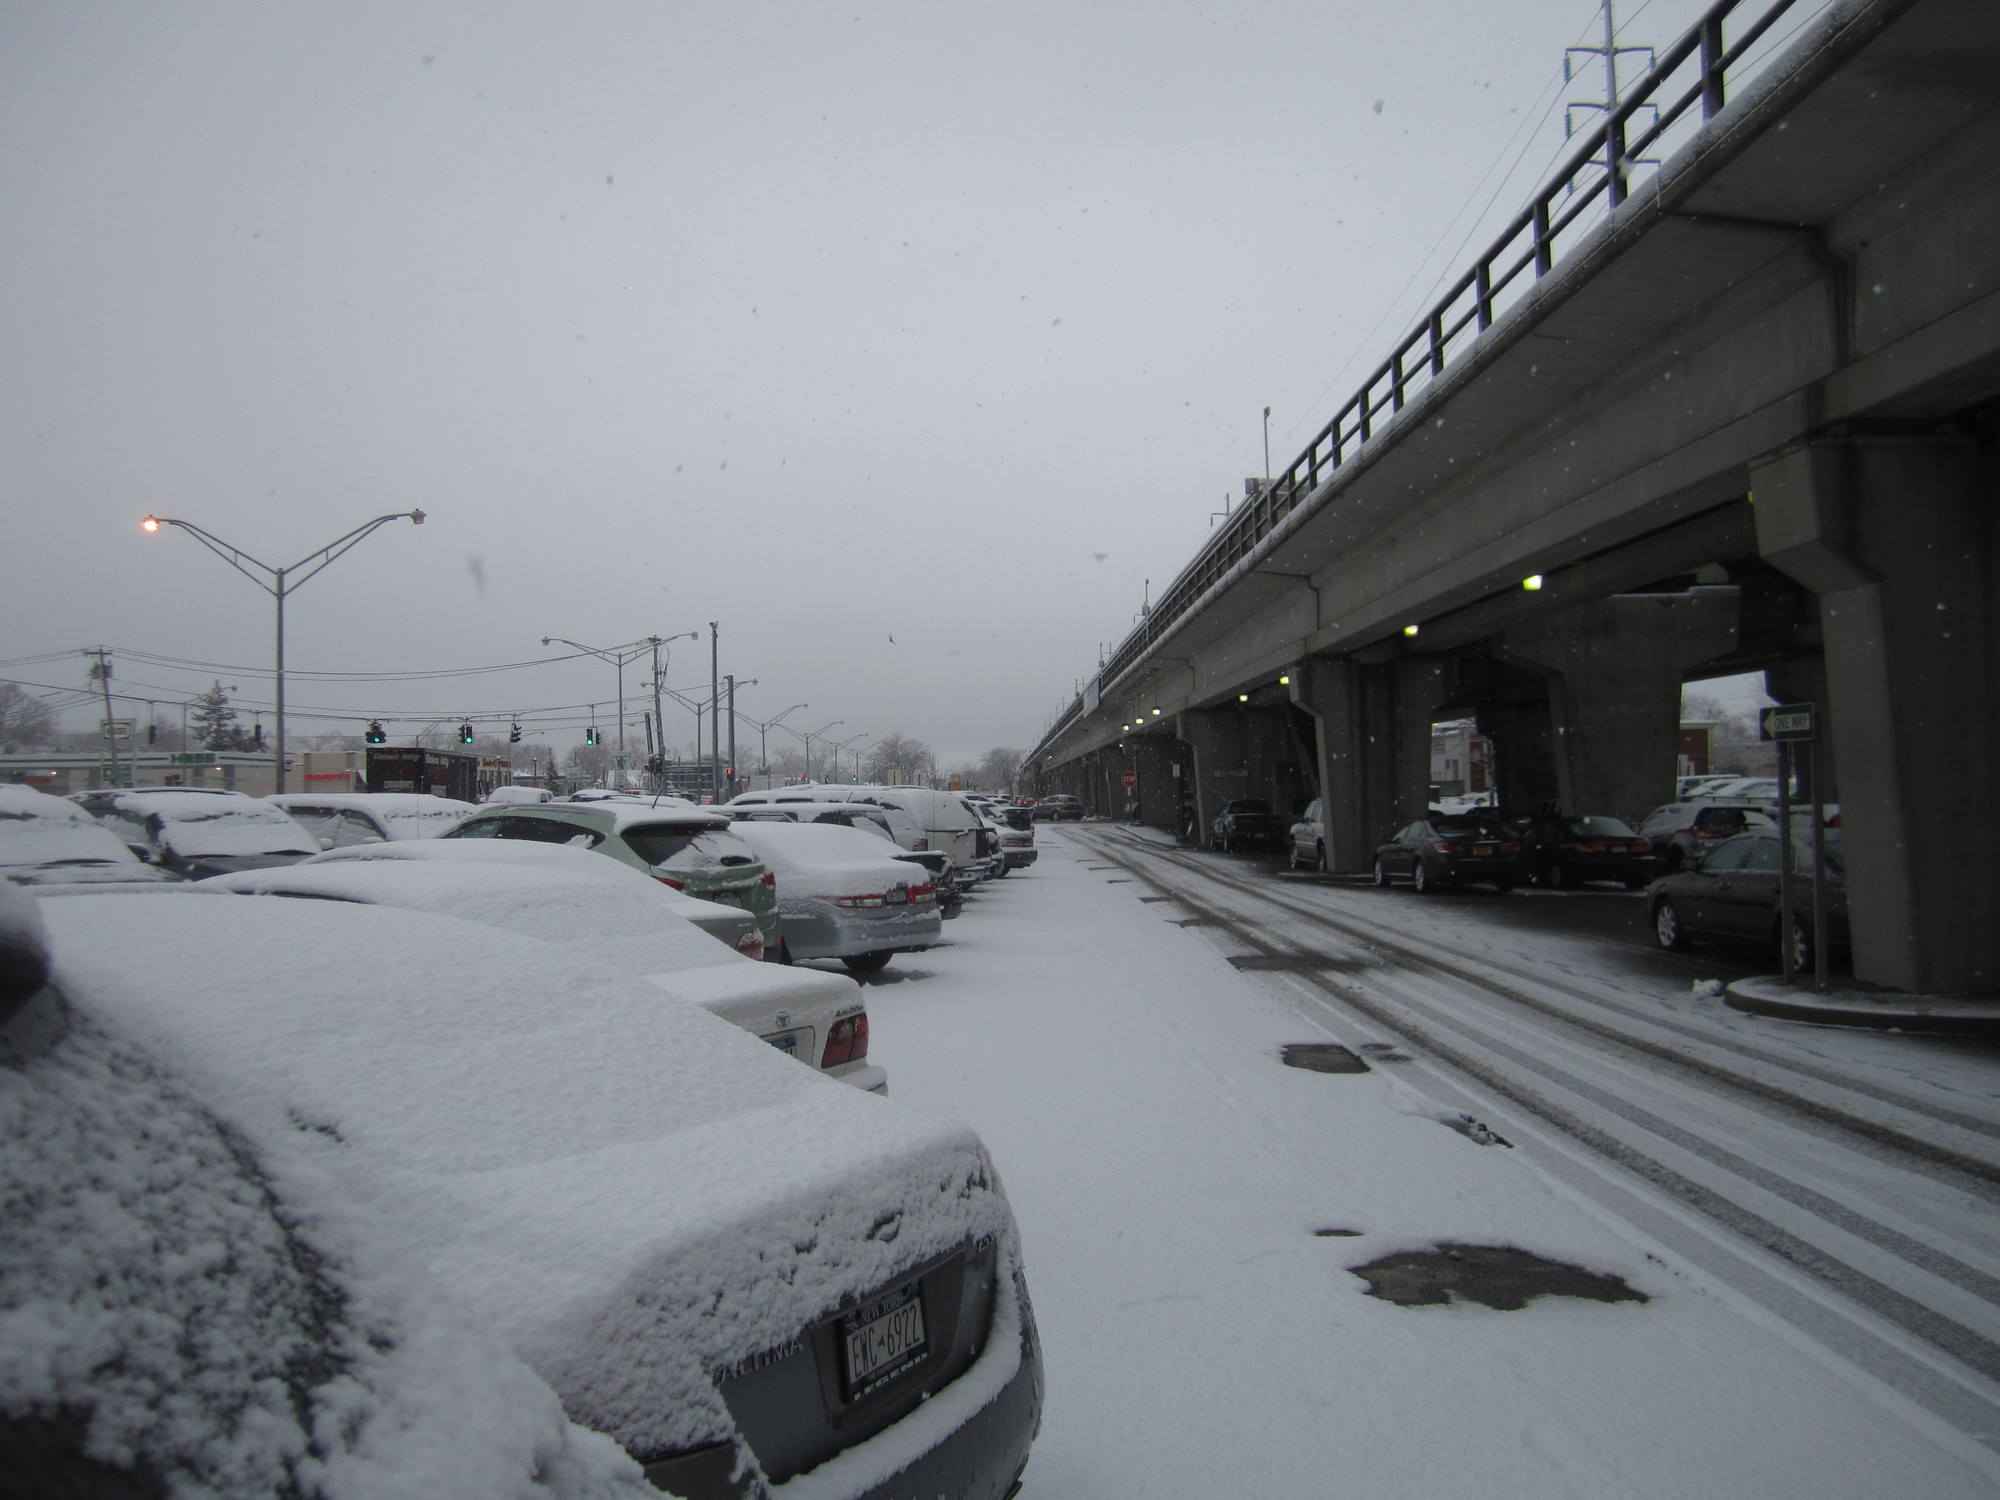 Despite the snow, the parking lots surrounding the Merrick LIRR station were, as usual, full on Tuesday morning.